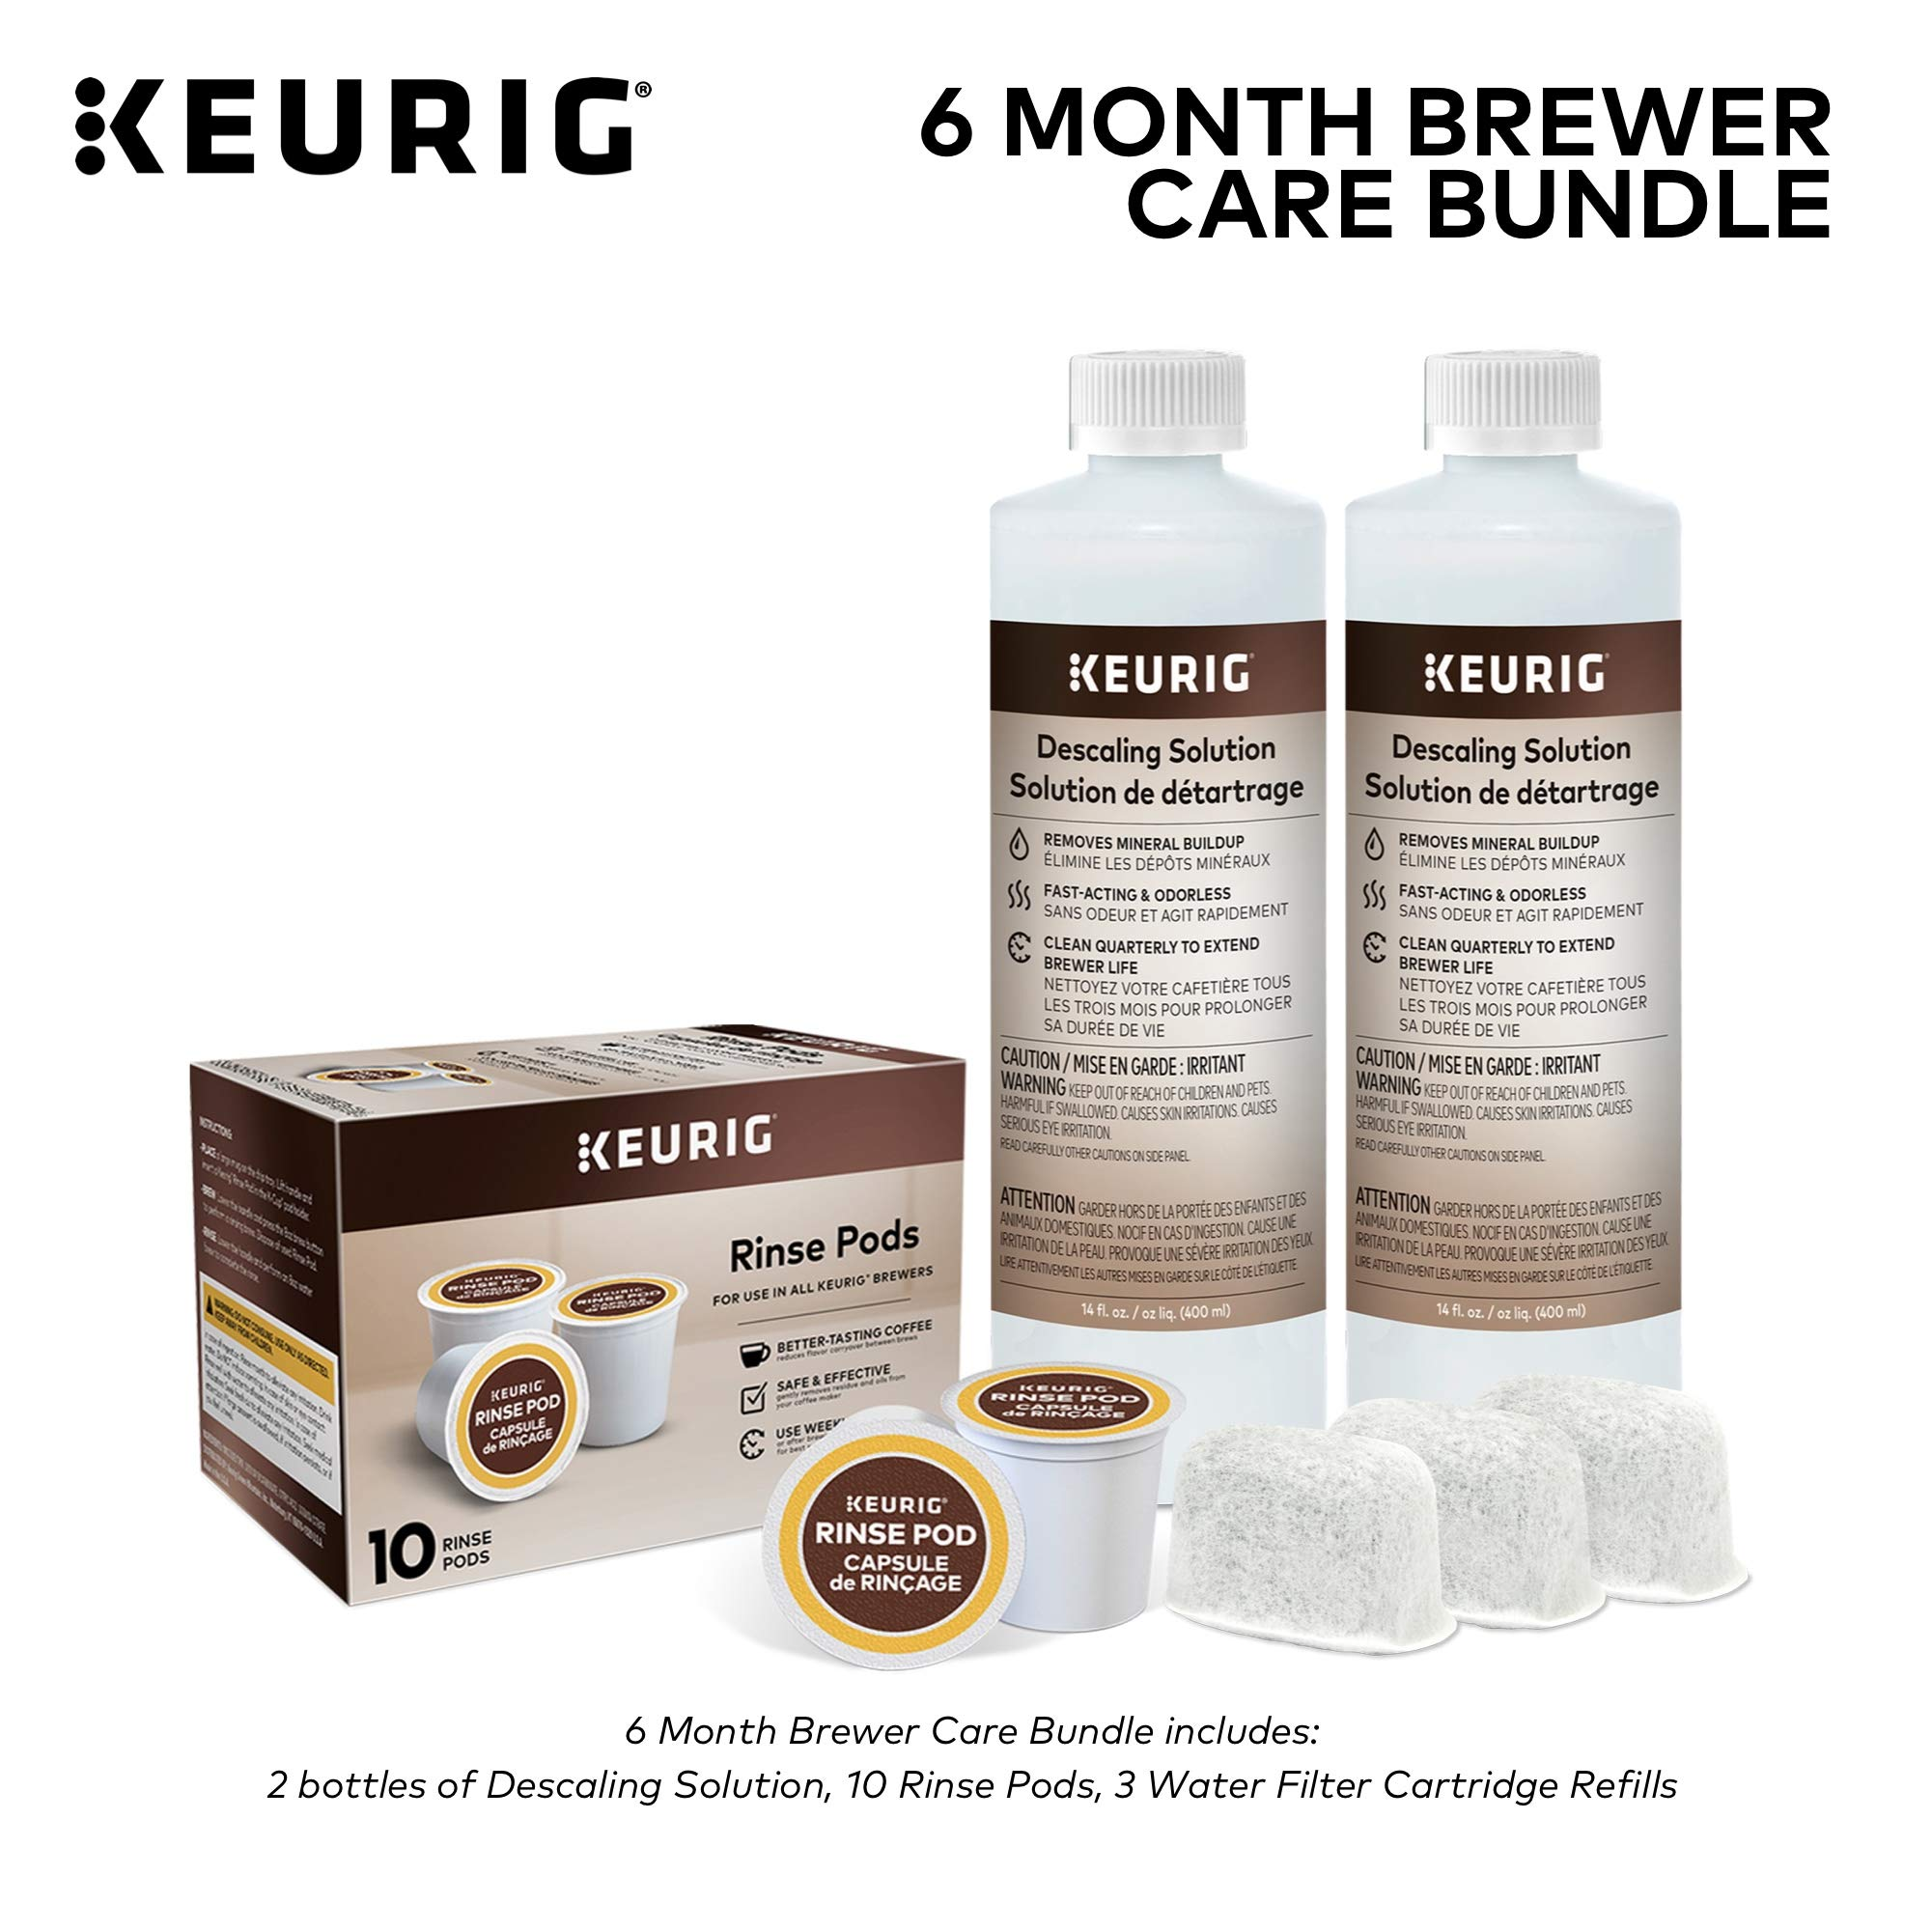 Keurig 6-Month Brewer Maintenance Kit, Includes Descaling Solution, Water Filter Cartridges & Rinse Pods, Compatible with Keurig Classic/1.0 & 2.0 K-Cup Pod Coffee Makers, 14 count by Keurig